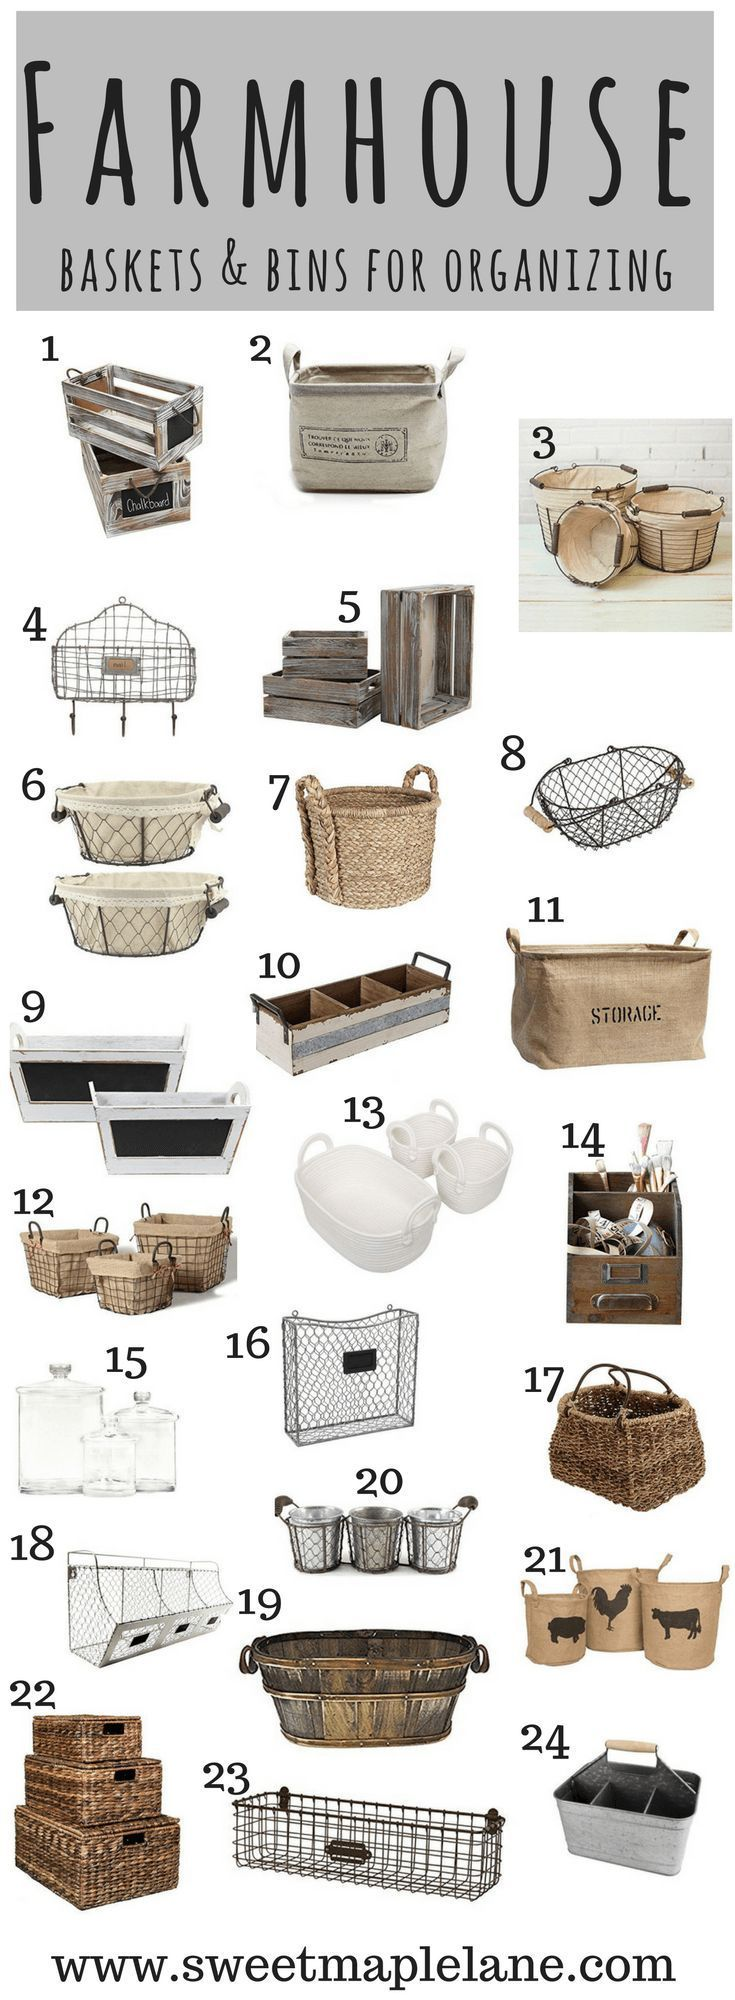 Rustic Farmhouse Baskets and Bins for Organizing - Sweet Maple Lane